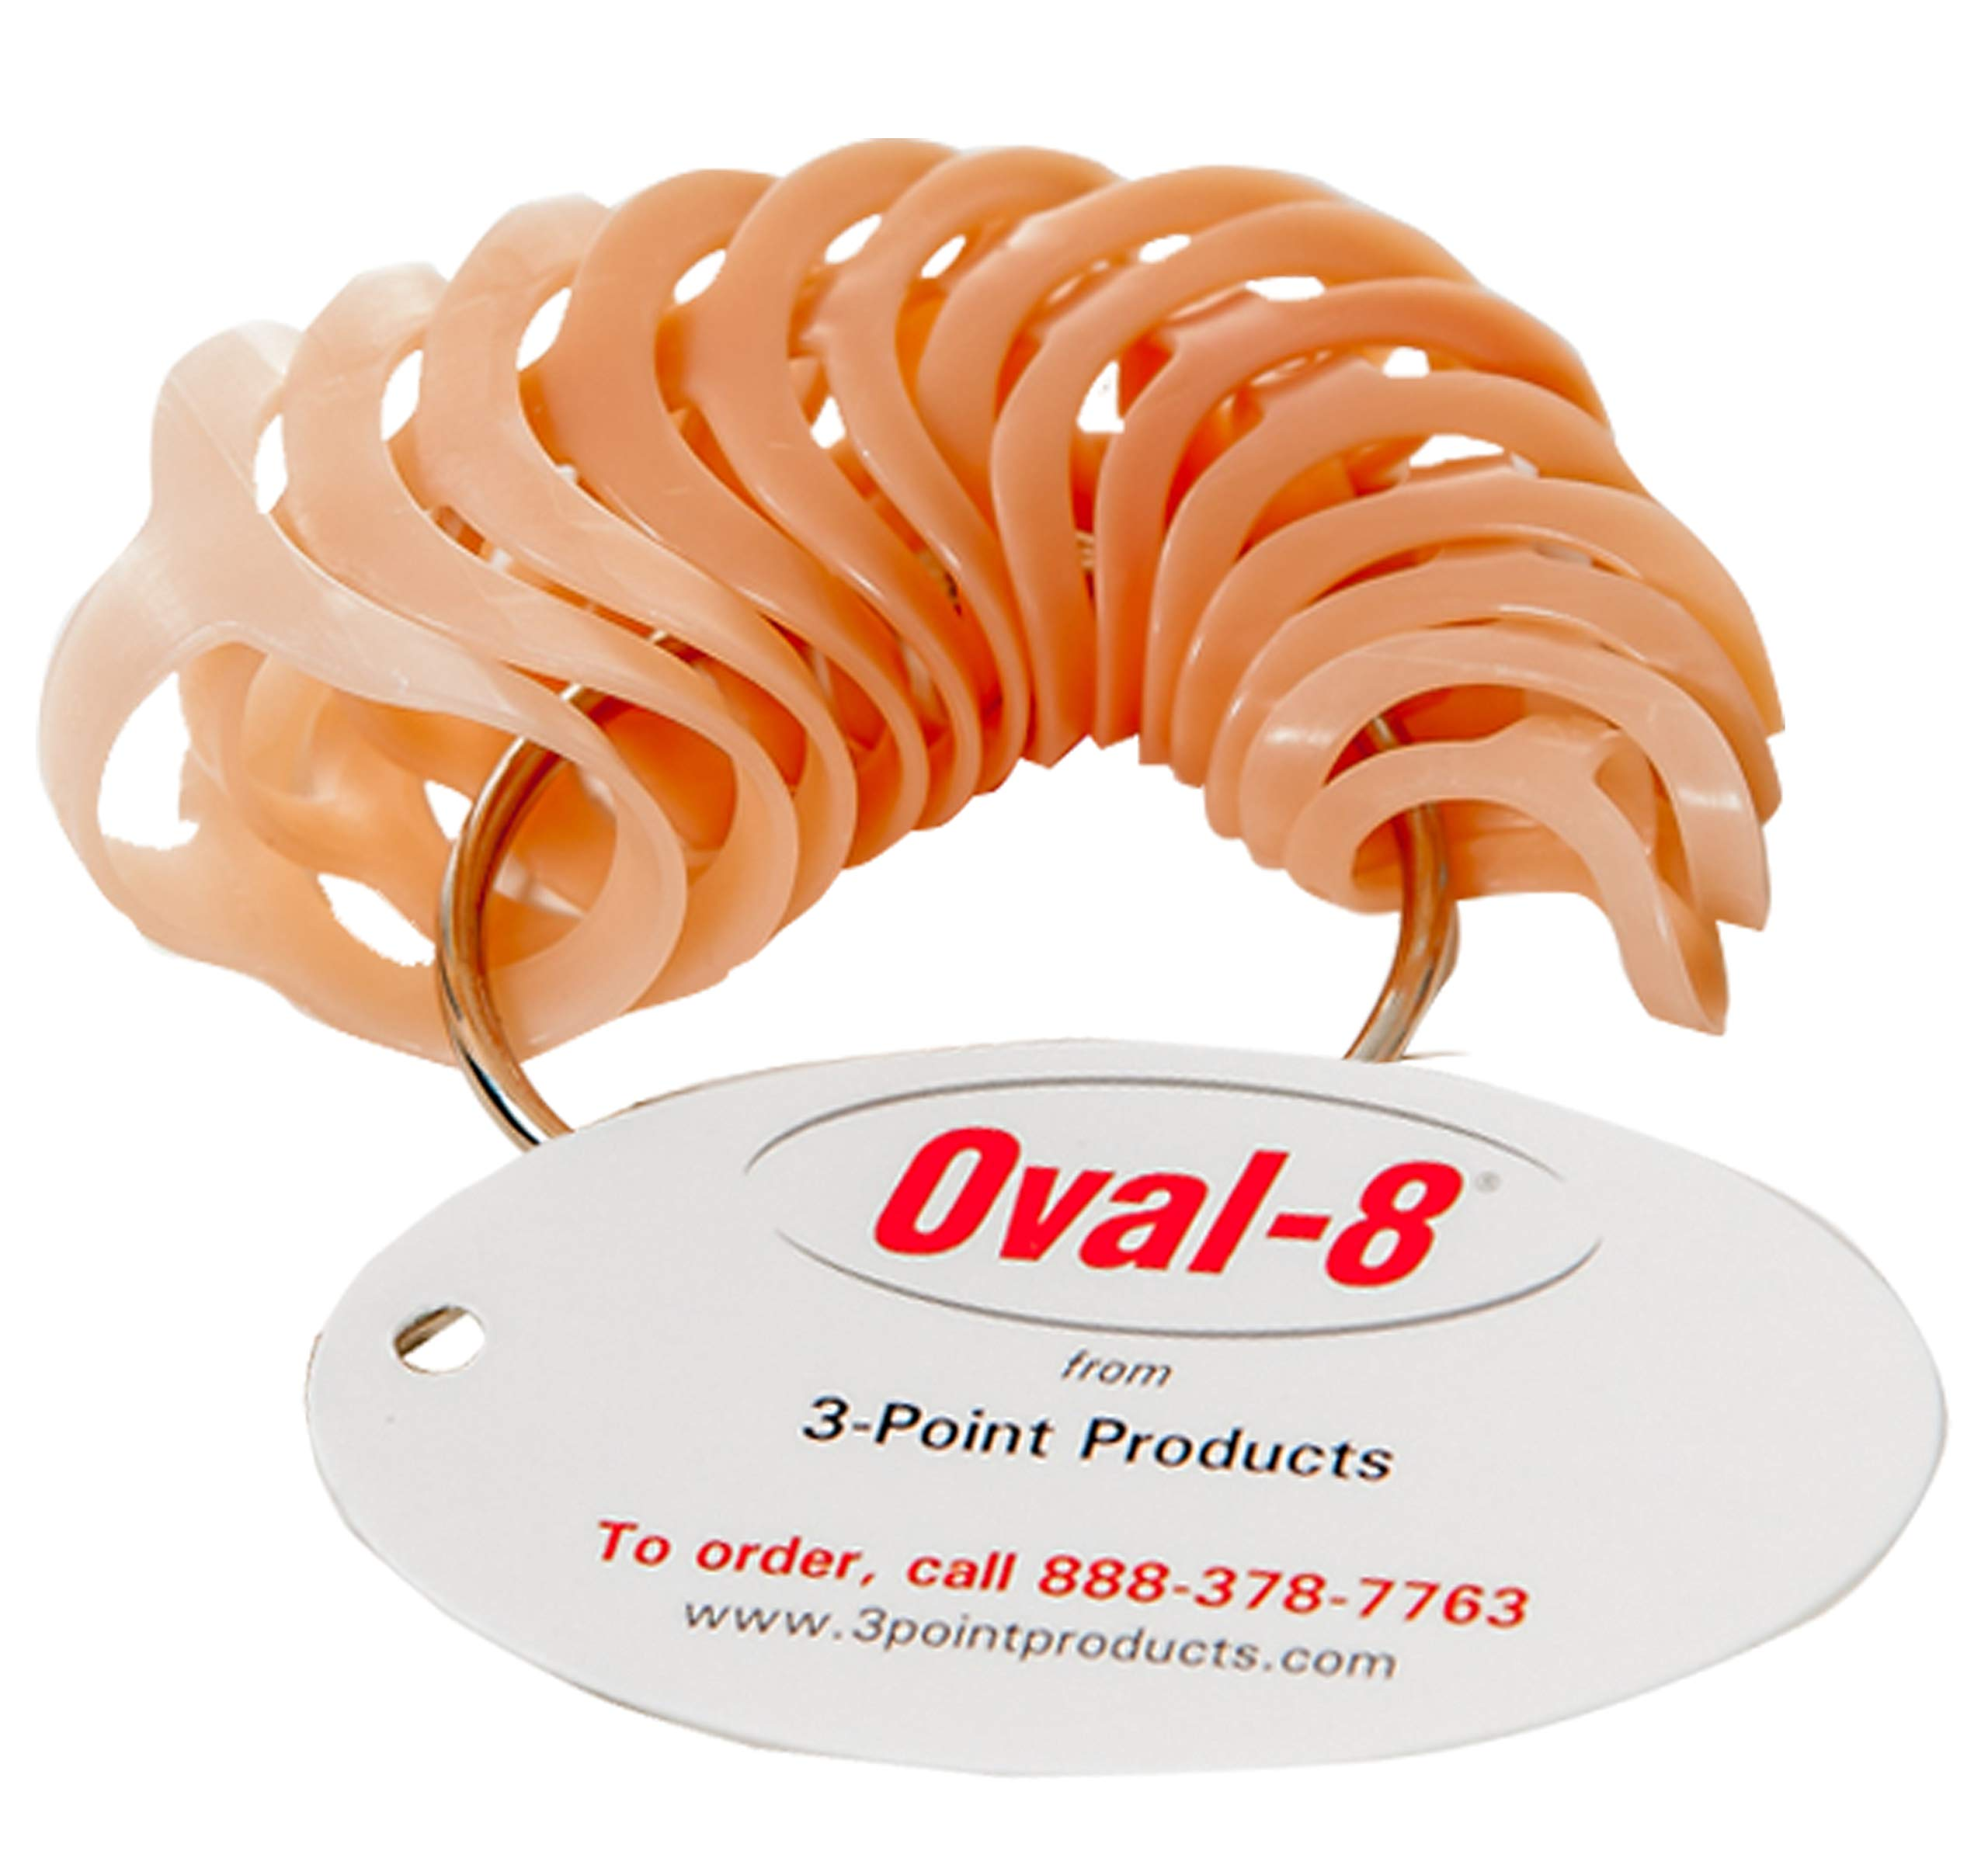 3-Point Products Oval-8 Finger Splints, Sizing Set